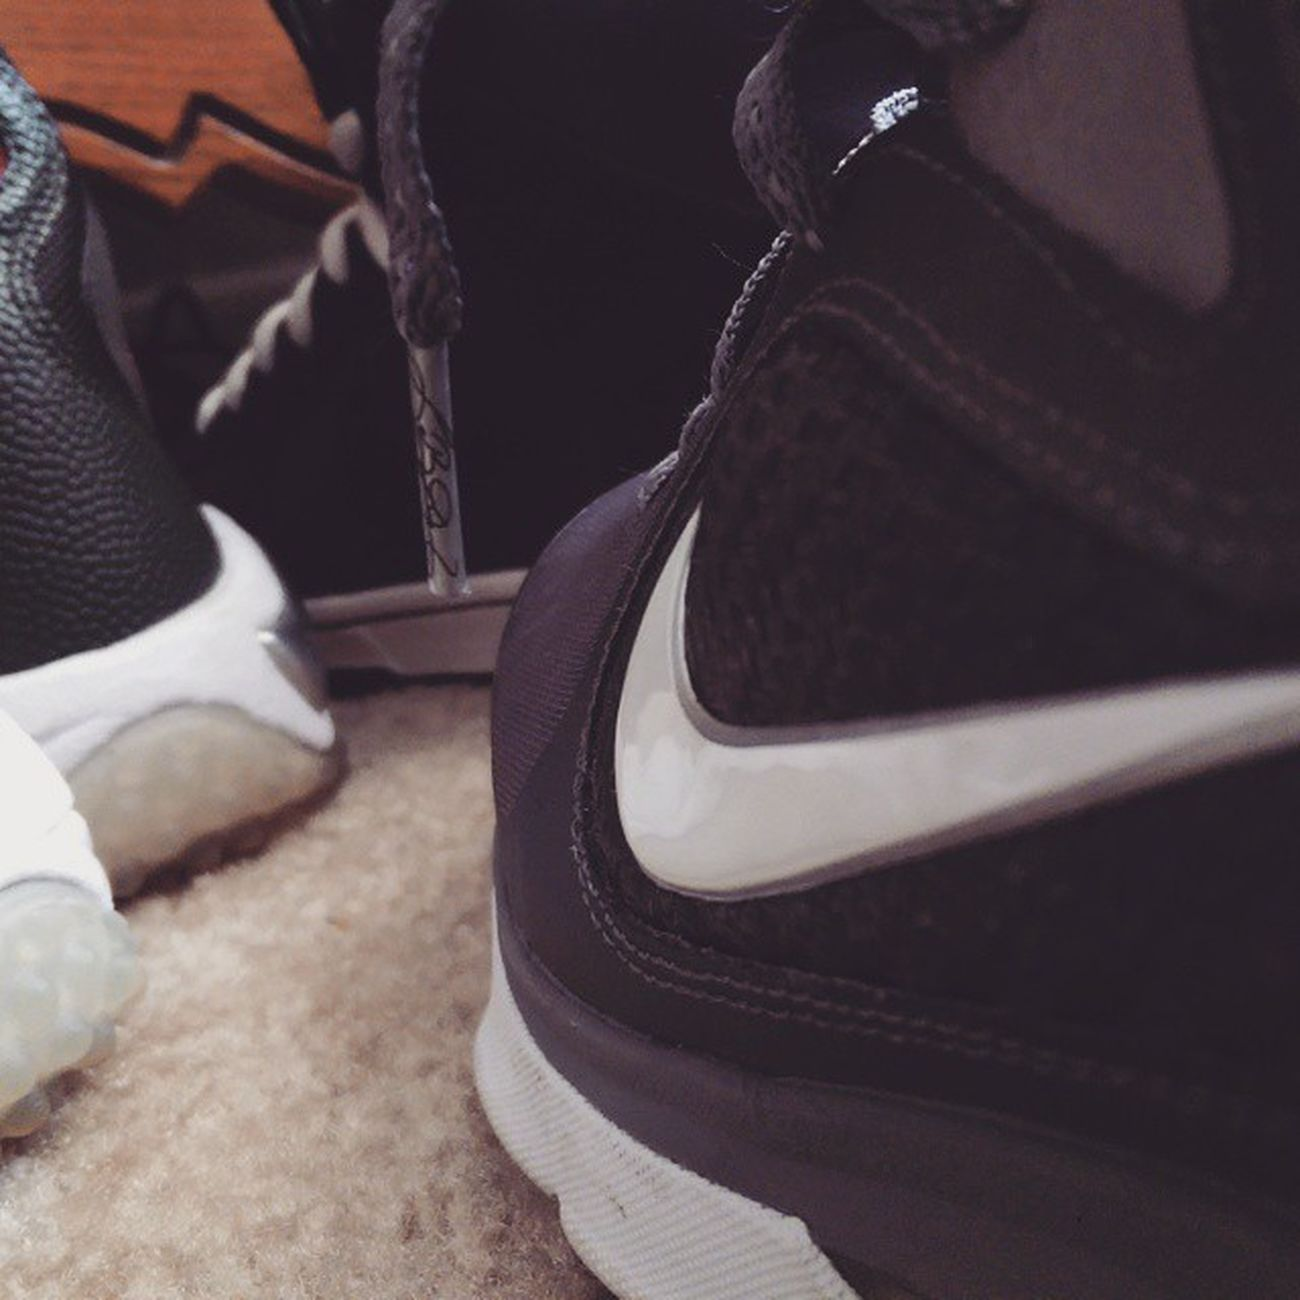 Lebrons Kicks Kicksoftheday Shoes Notes From The Underground Taking Photos VSCO Photography Just Shoot.. Check This Out